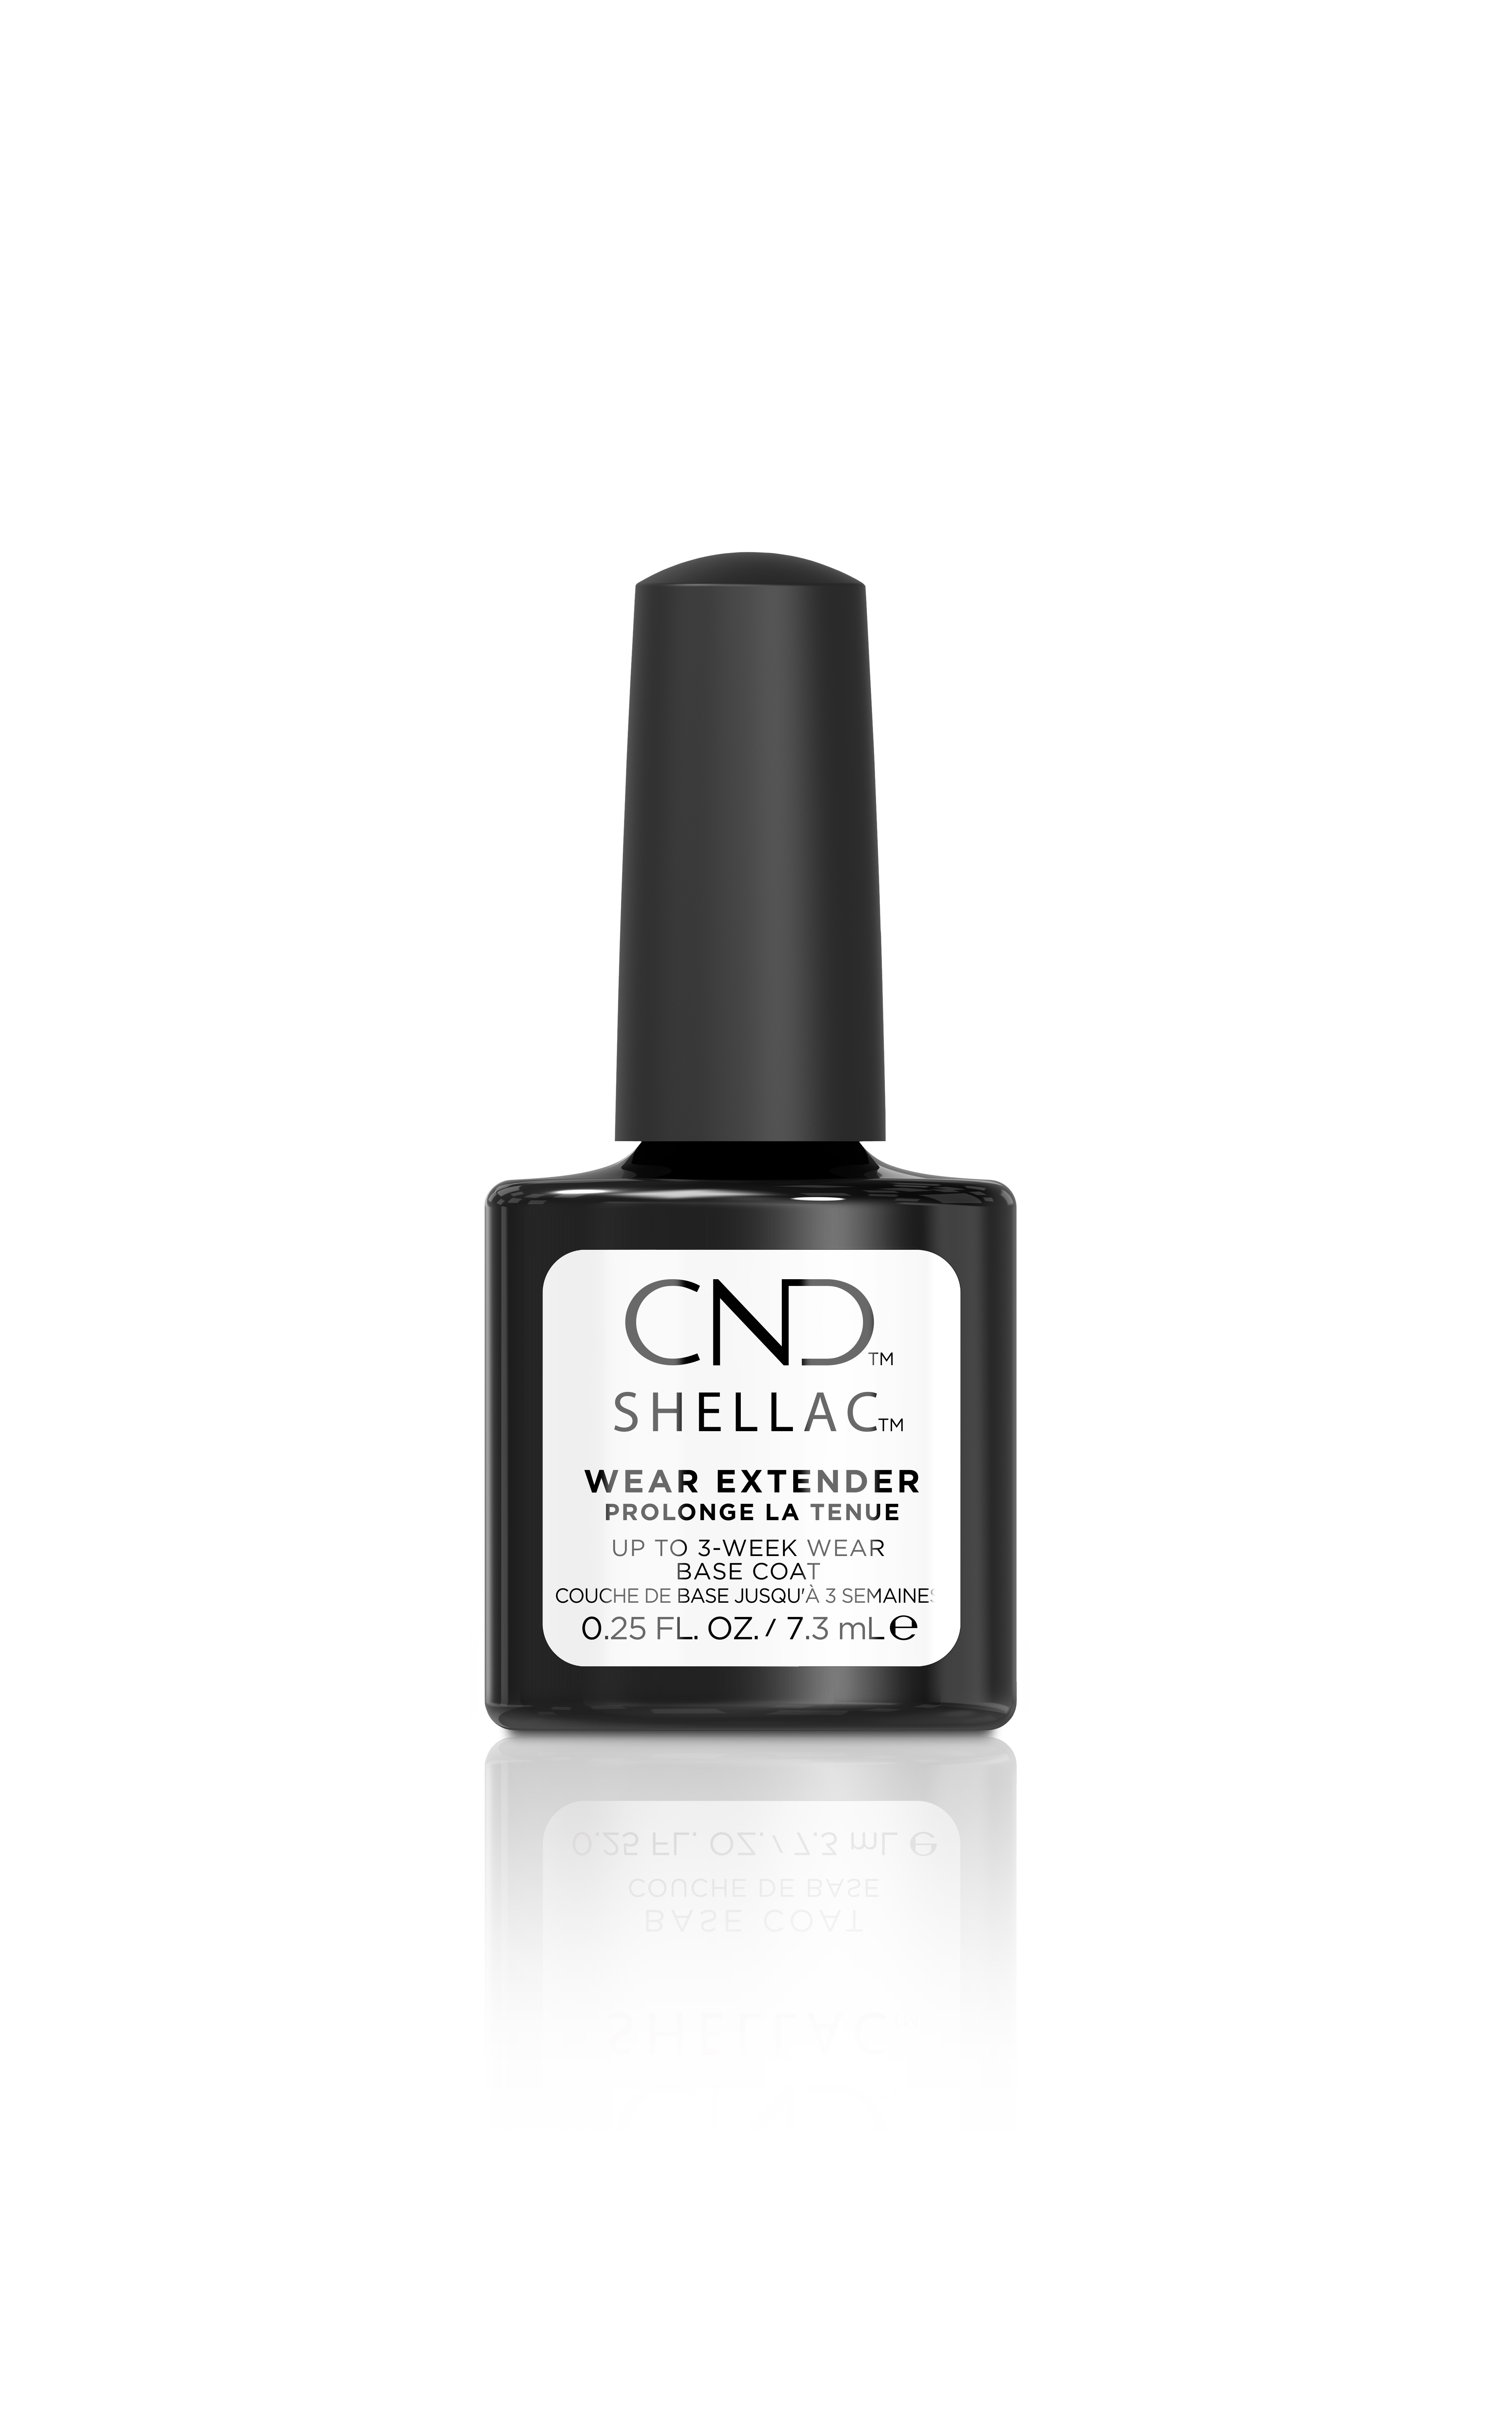 CND Launches Wear Extender Base Coat